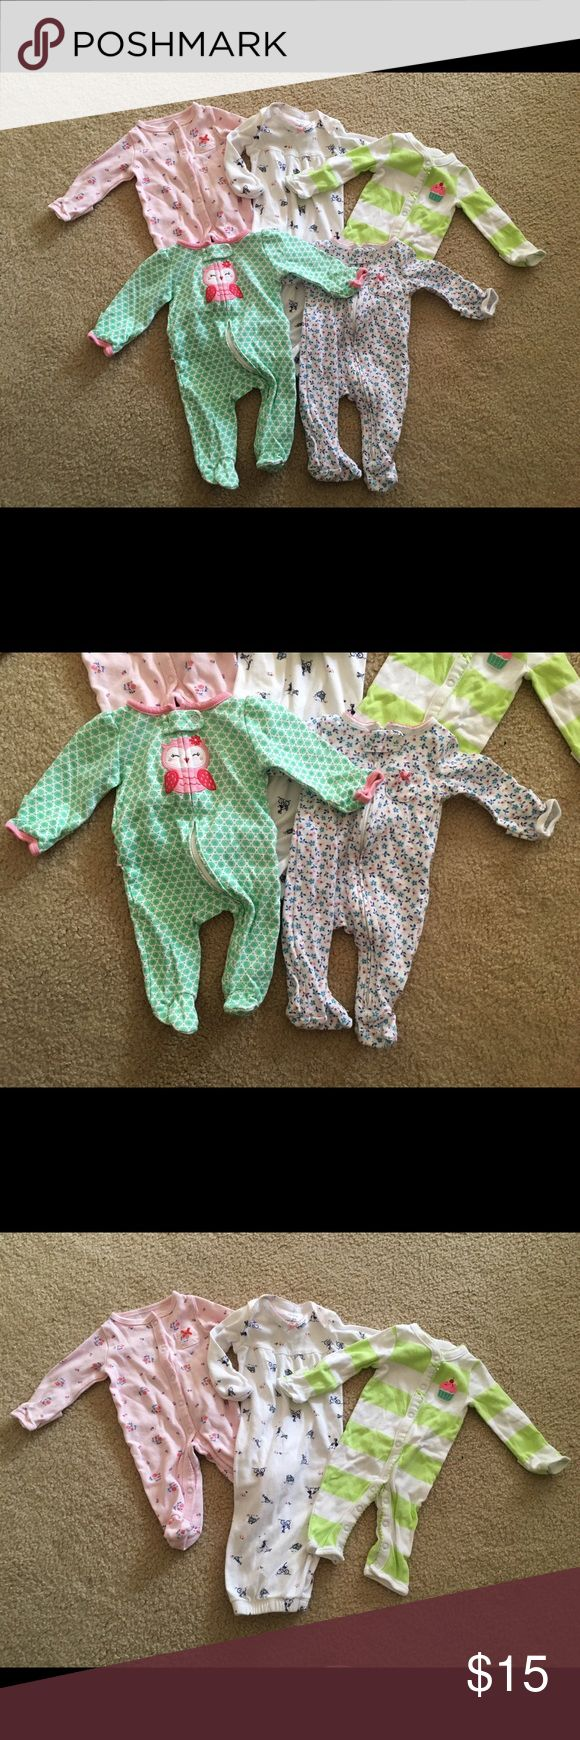 Newborn baby girl pajama bundle Bundle of baby girl pajamas and sleeping gown. All size newborn and are in excellent condition Pajamas